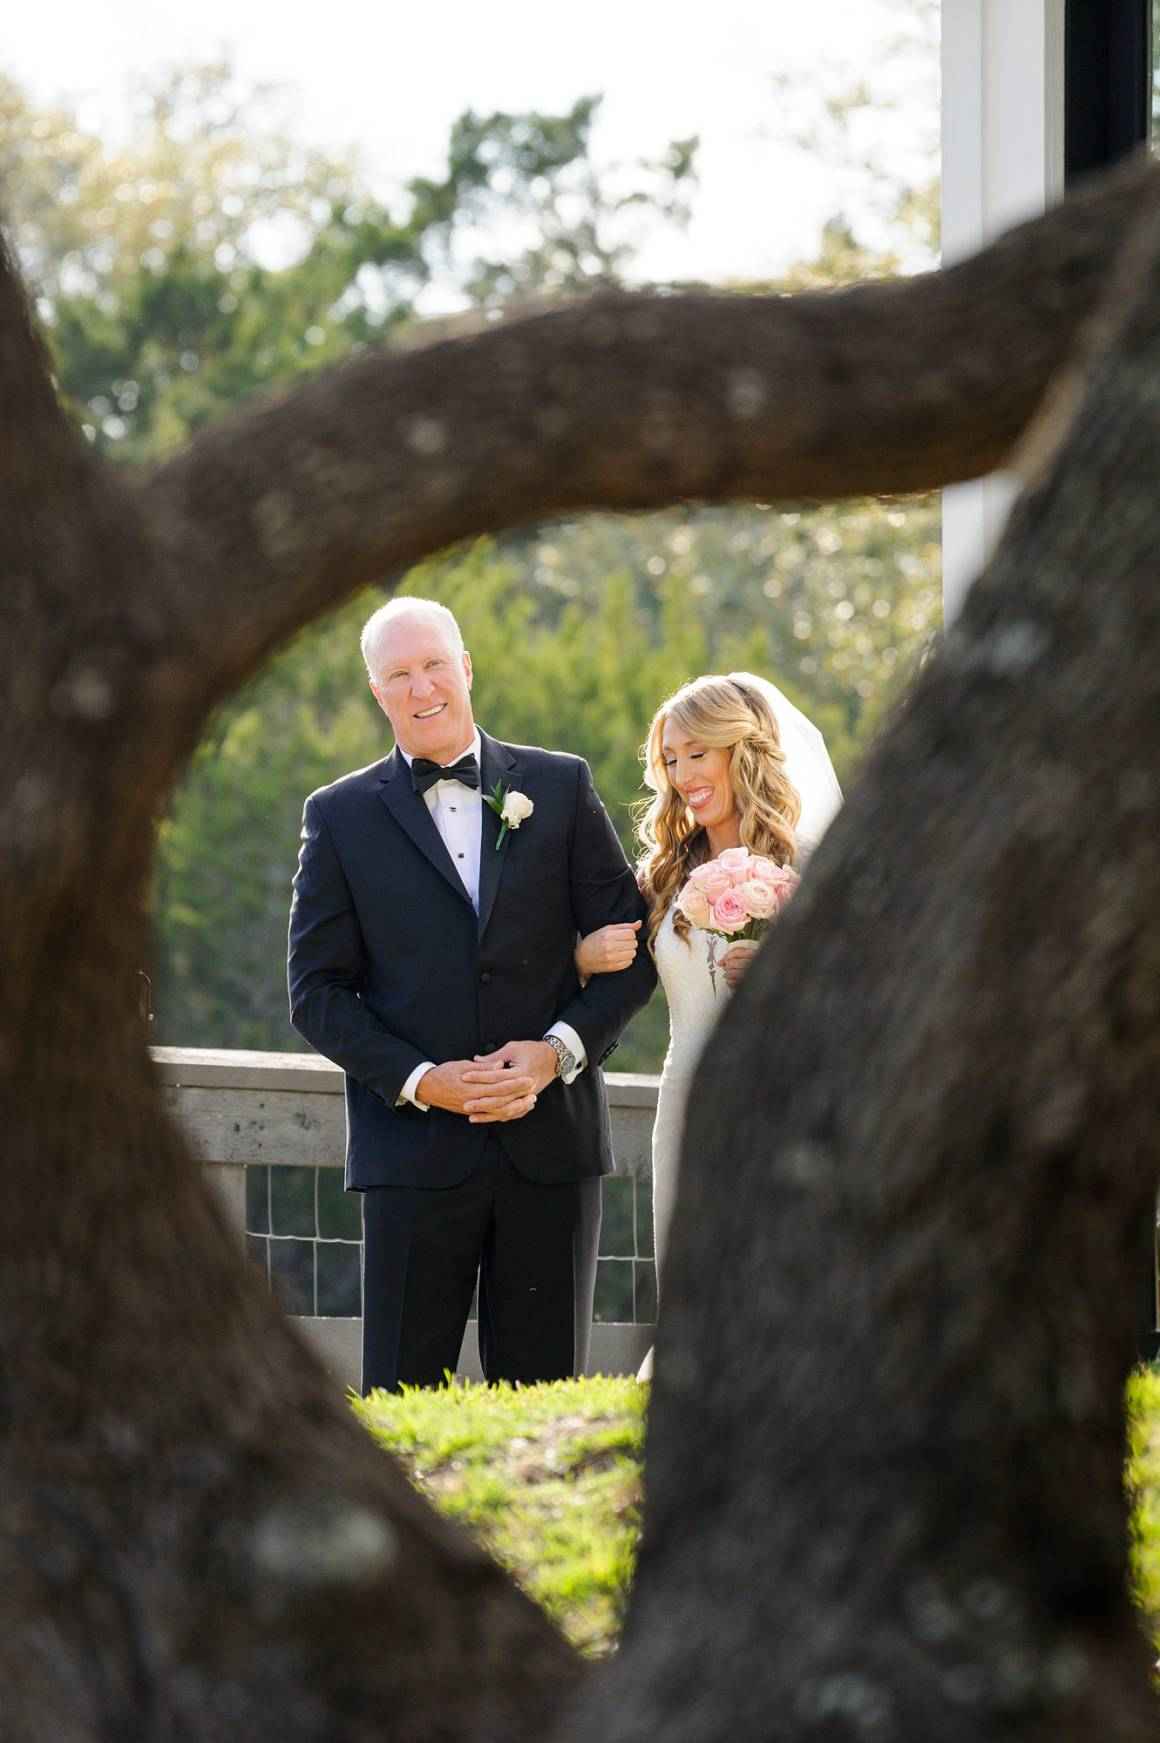 Antebellum Oaks Wedding - Austin Wedding Photographer - Jacob and Katie - dad walking bride down aisle -